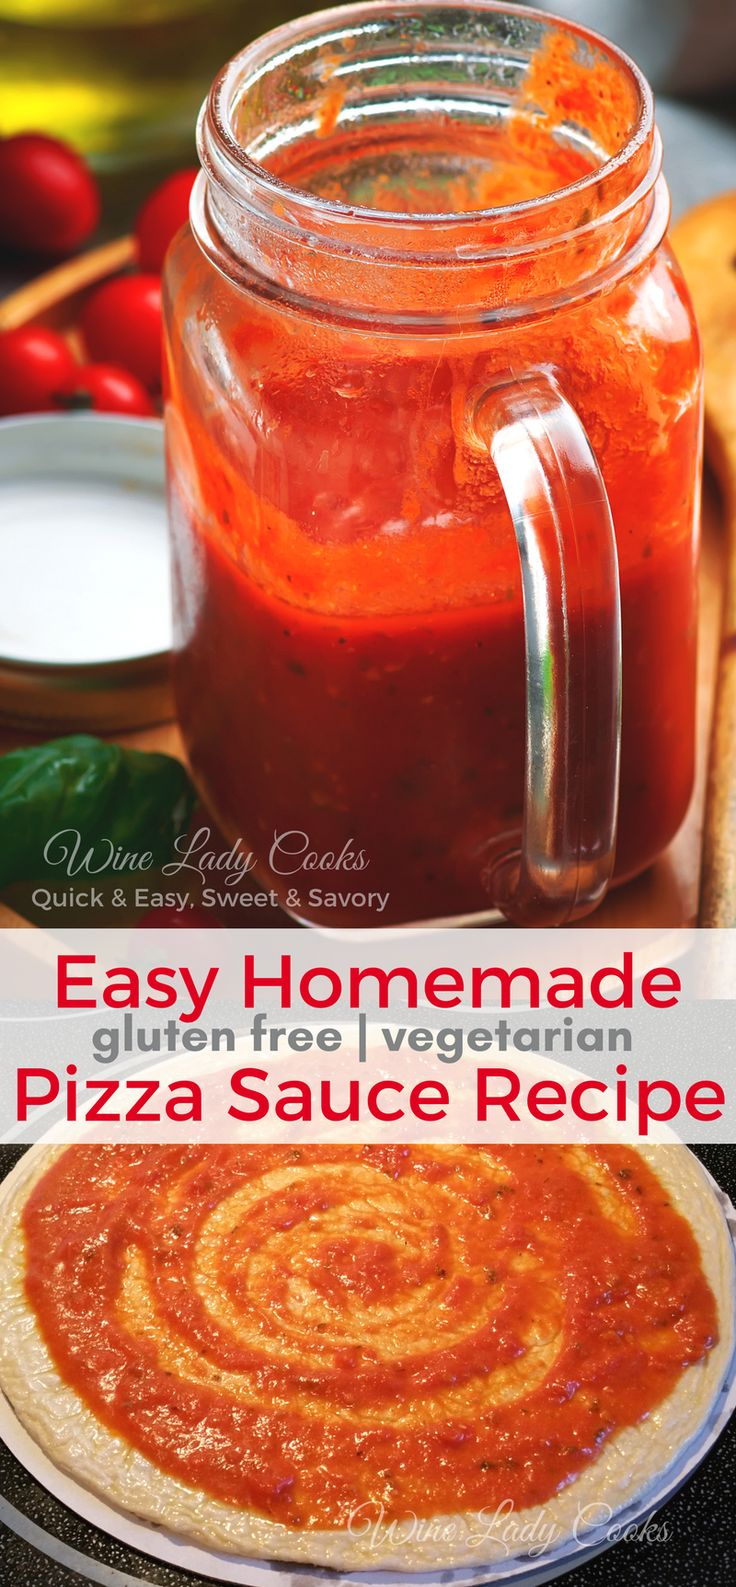 Easy Homemade Pizza Sauce Recipe to top homemade pizza. Click thru for easy recipe. #homemade #pizza #sauce #easyrecipe